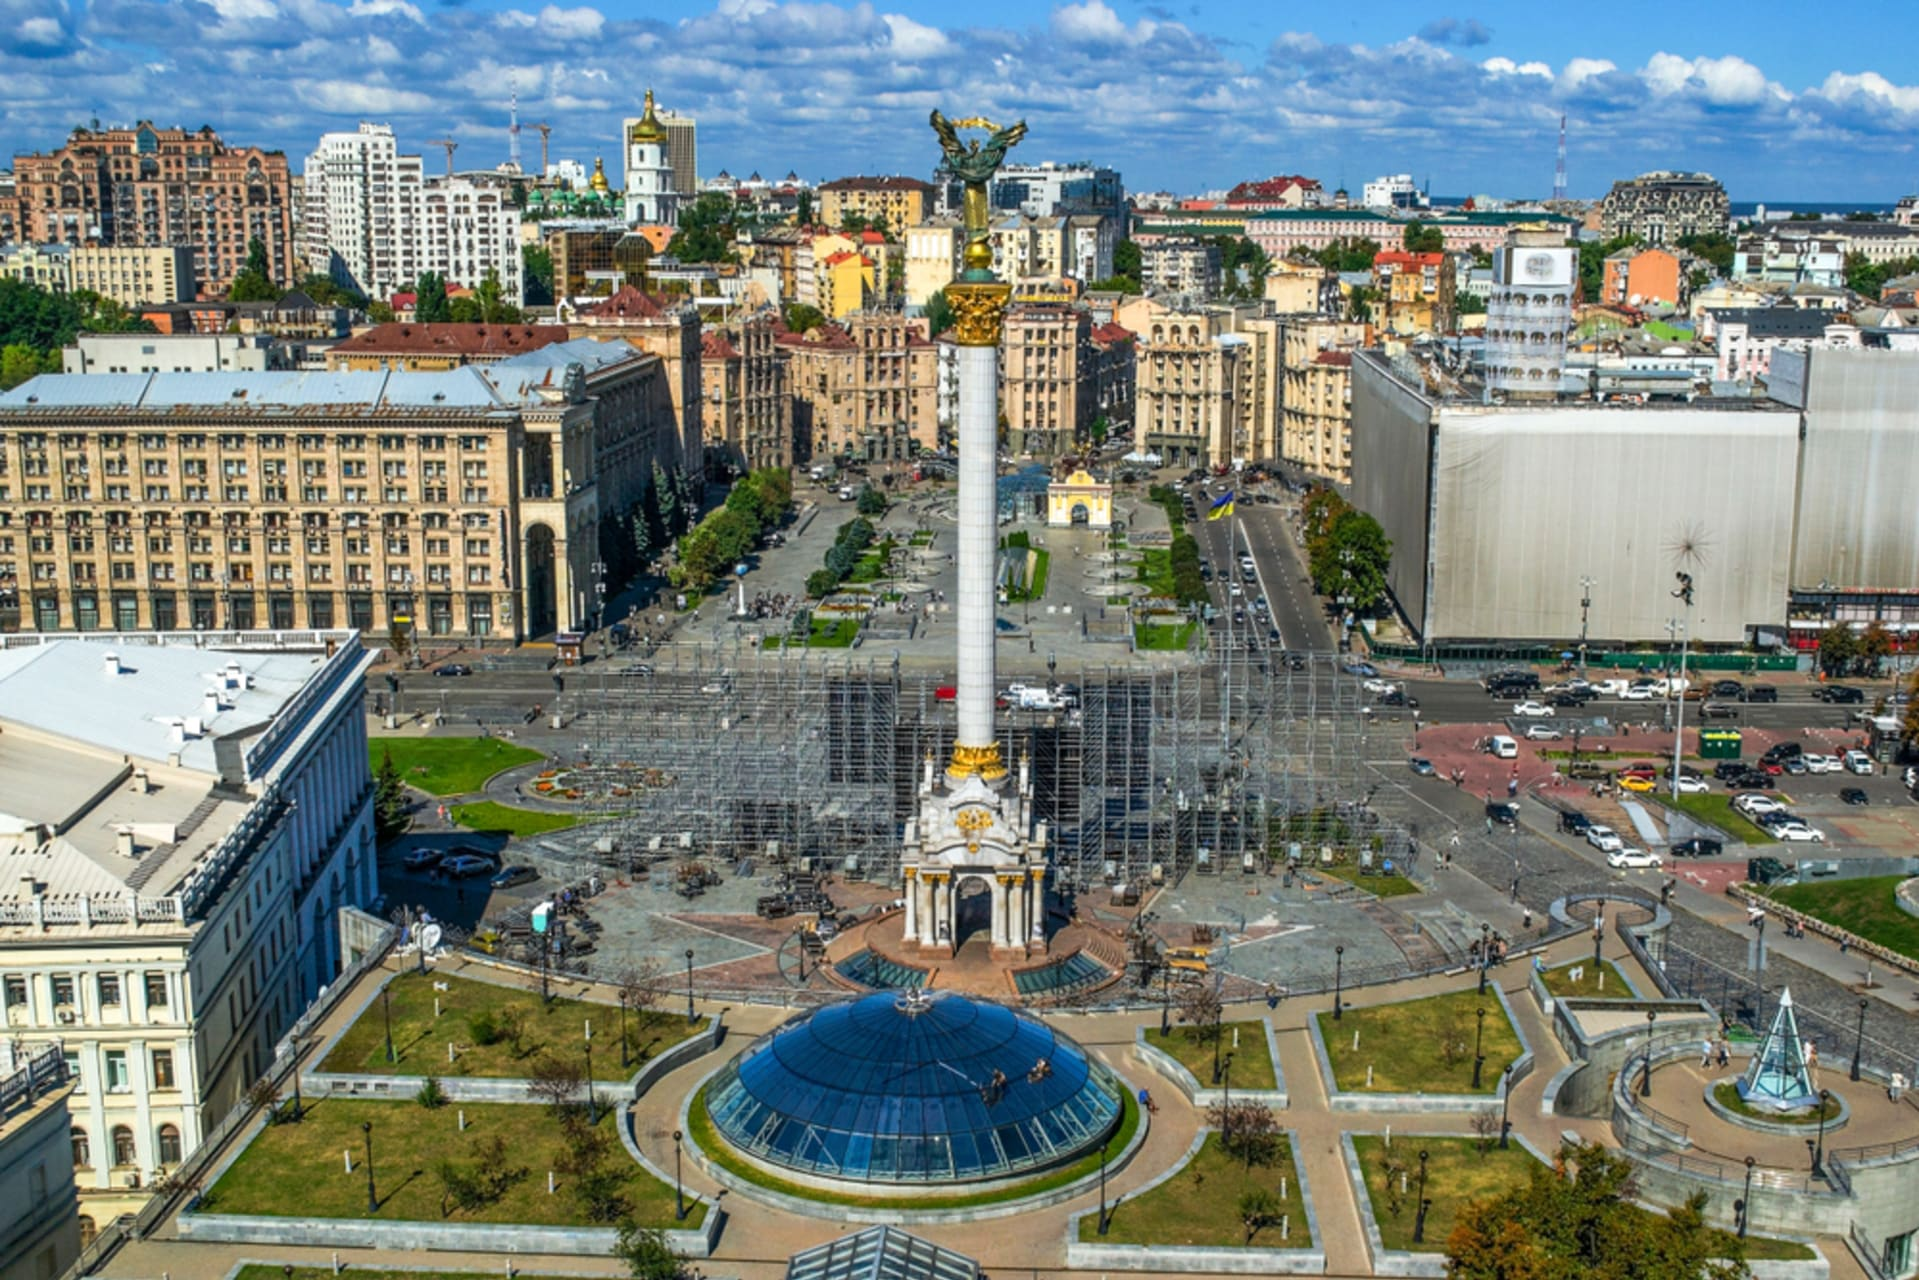 Kyiv - Feel the Heartbeat of Kyiv while exploring Stalinist Empire-style architecture in Khreshchatyk Street. A Quest.